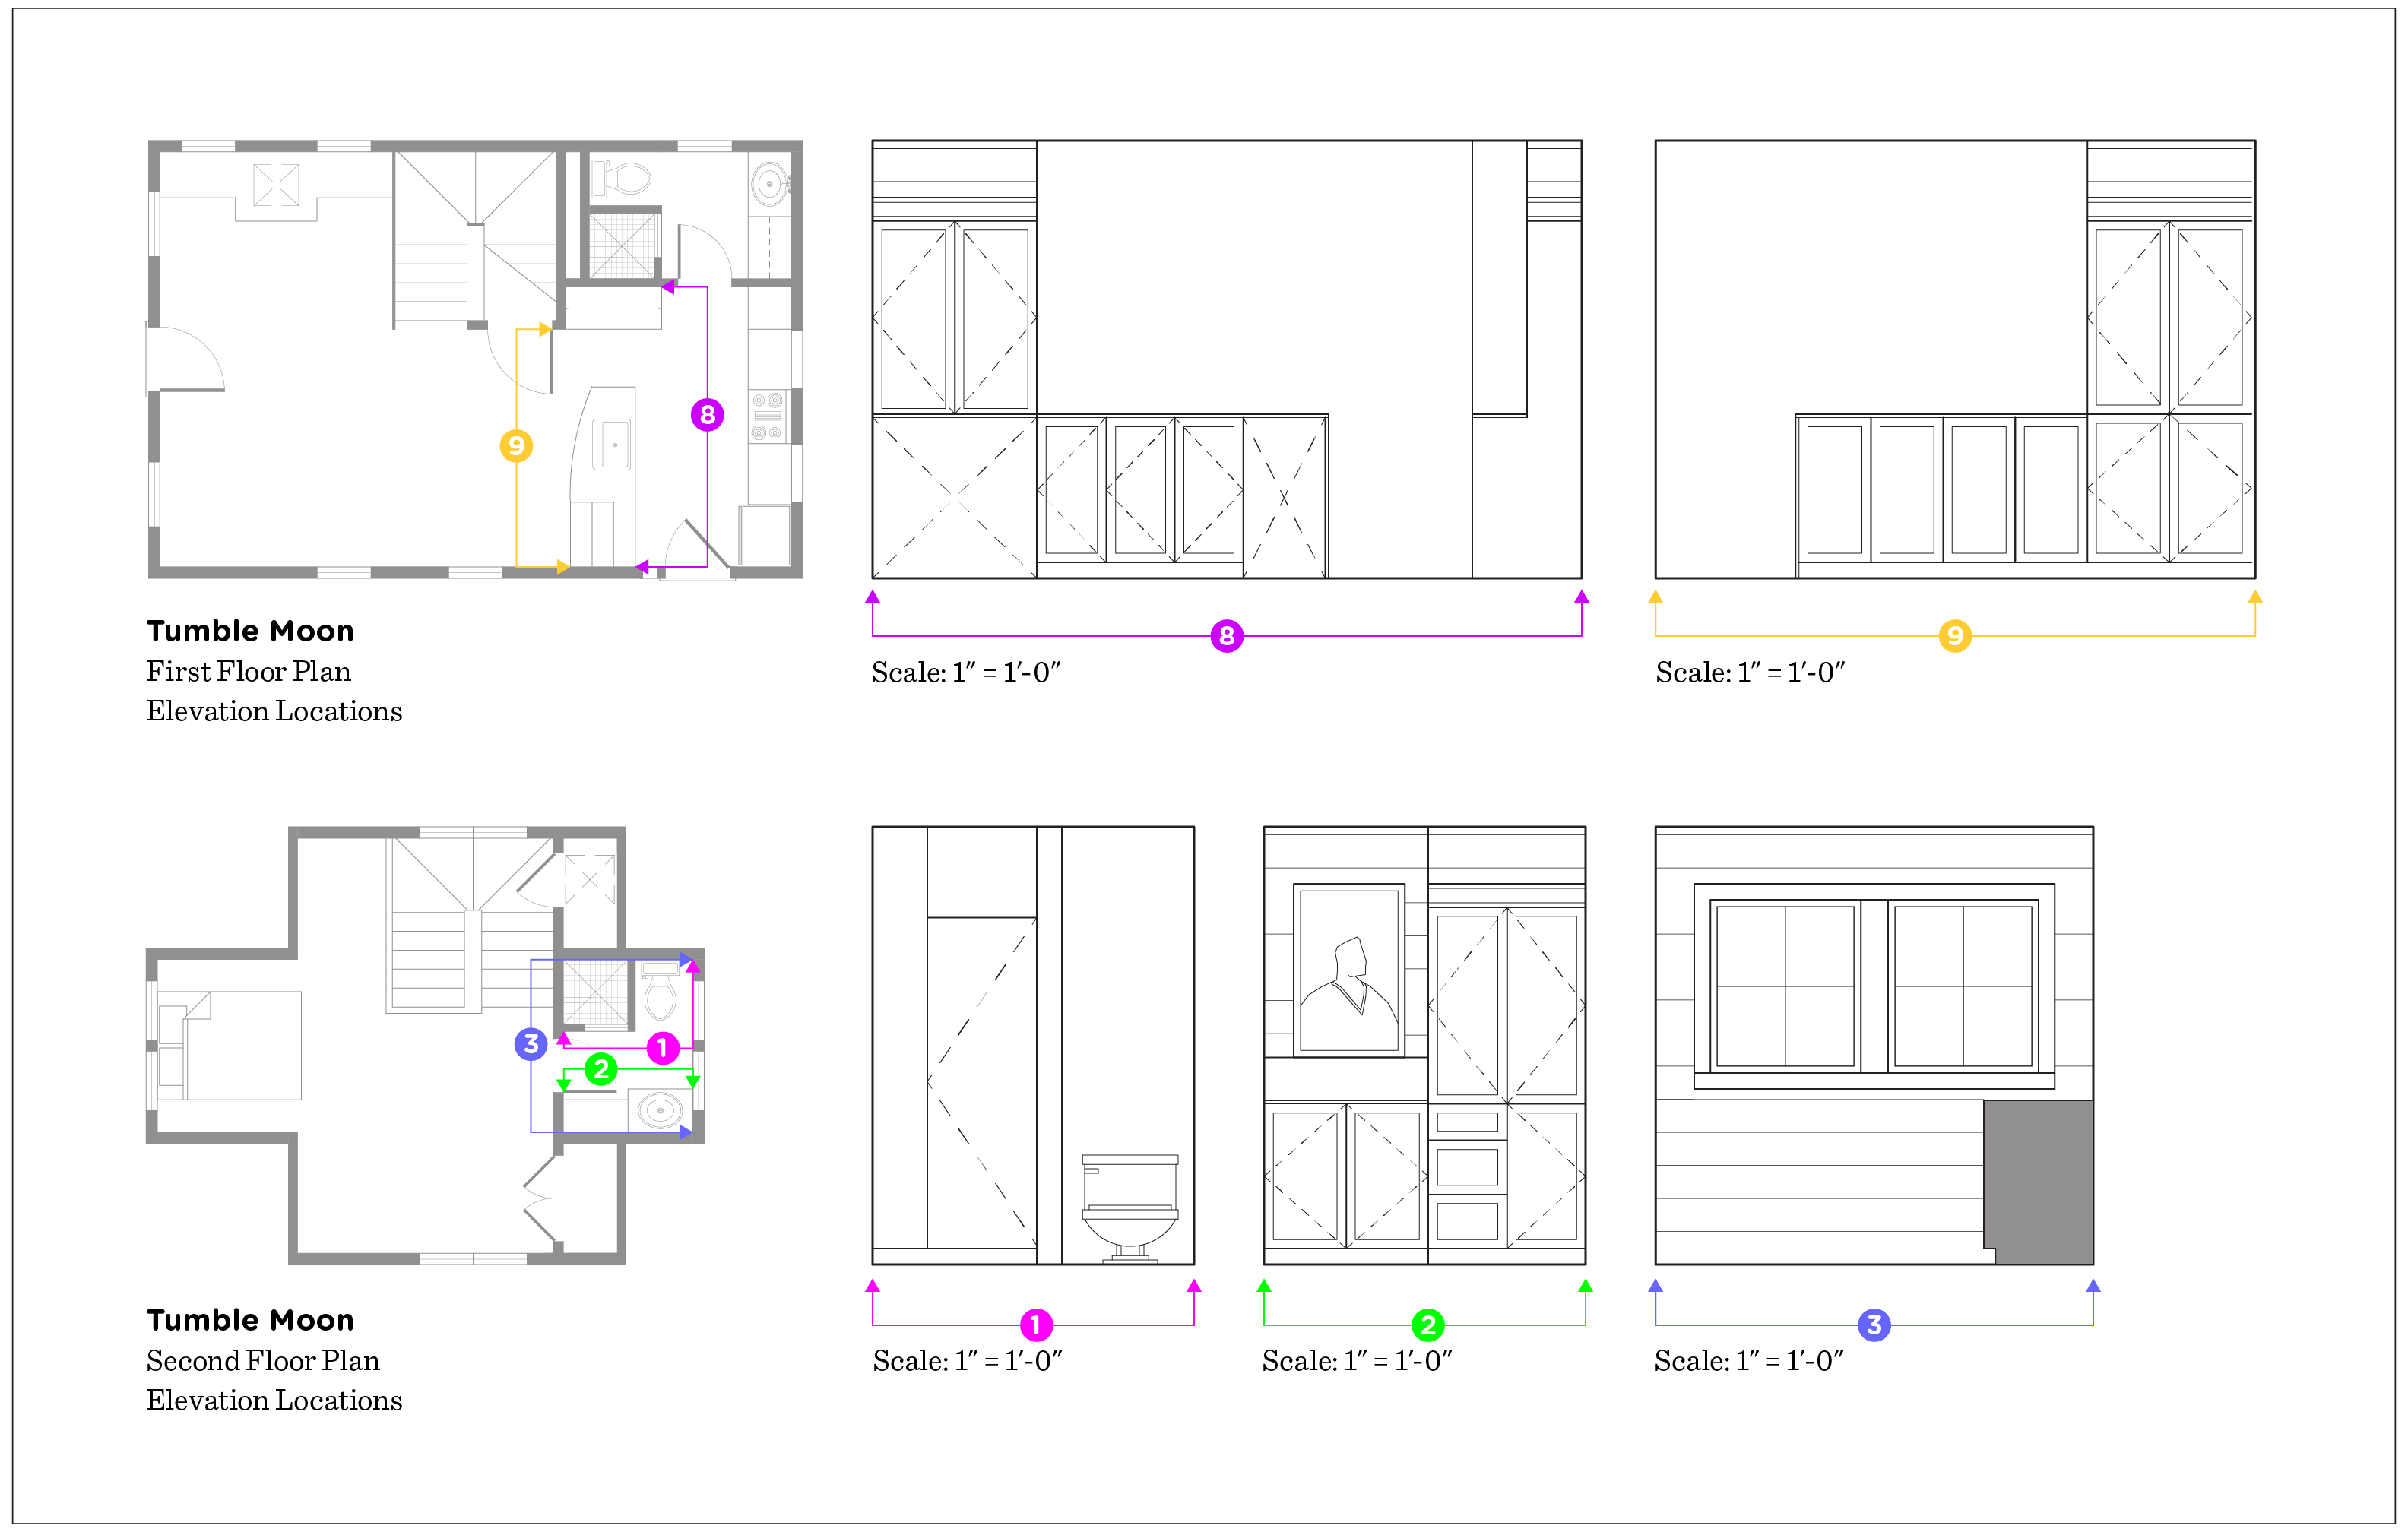 (above) Dot 8's elevation shows an empty space under the cabinets (far lower left). This little nook is where my dogs' bed will be. Elevations 1, 2, and 3 on the second floor do not show the correct ceiling height. With all the different gable pitches, it's hard to depict, but will be addressed correctly in the CDs.